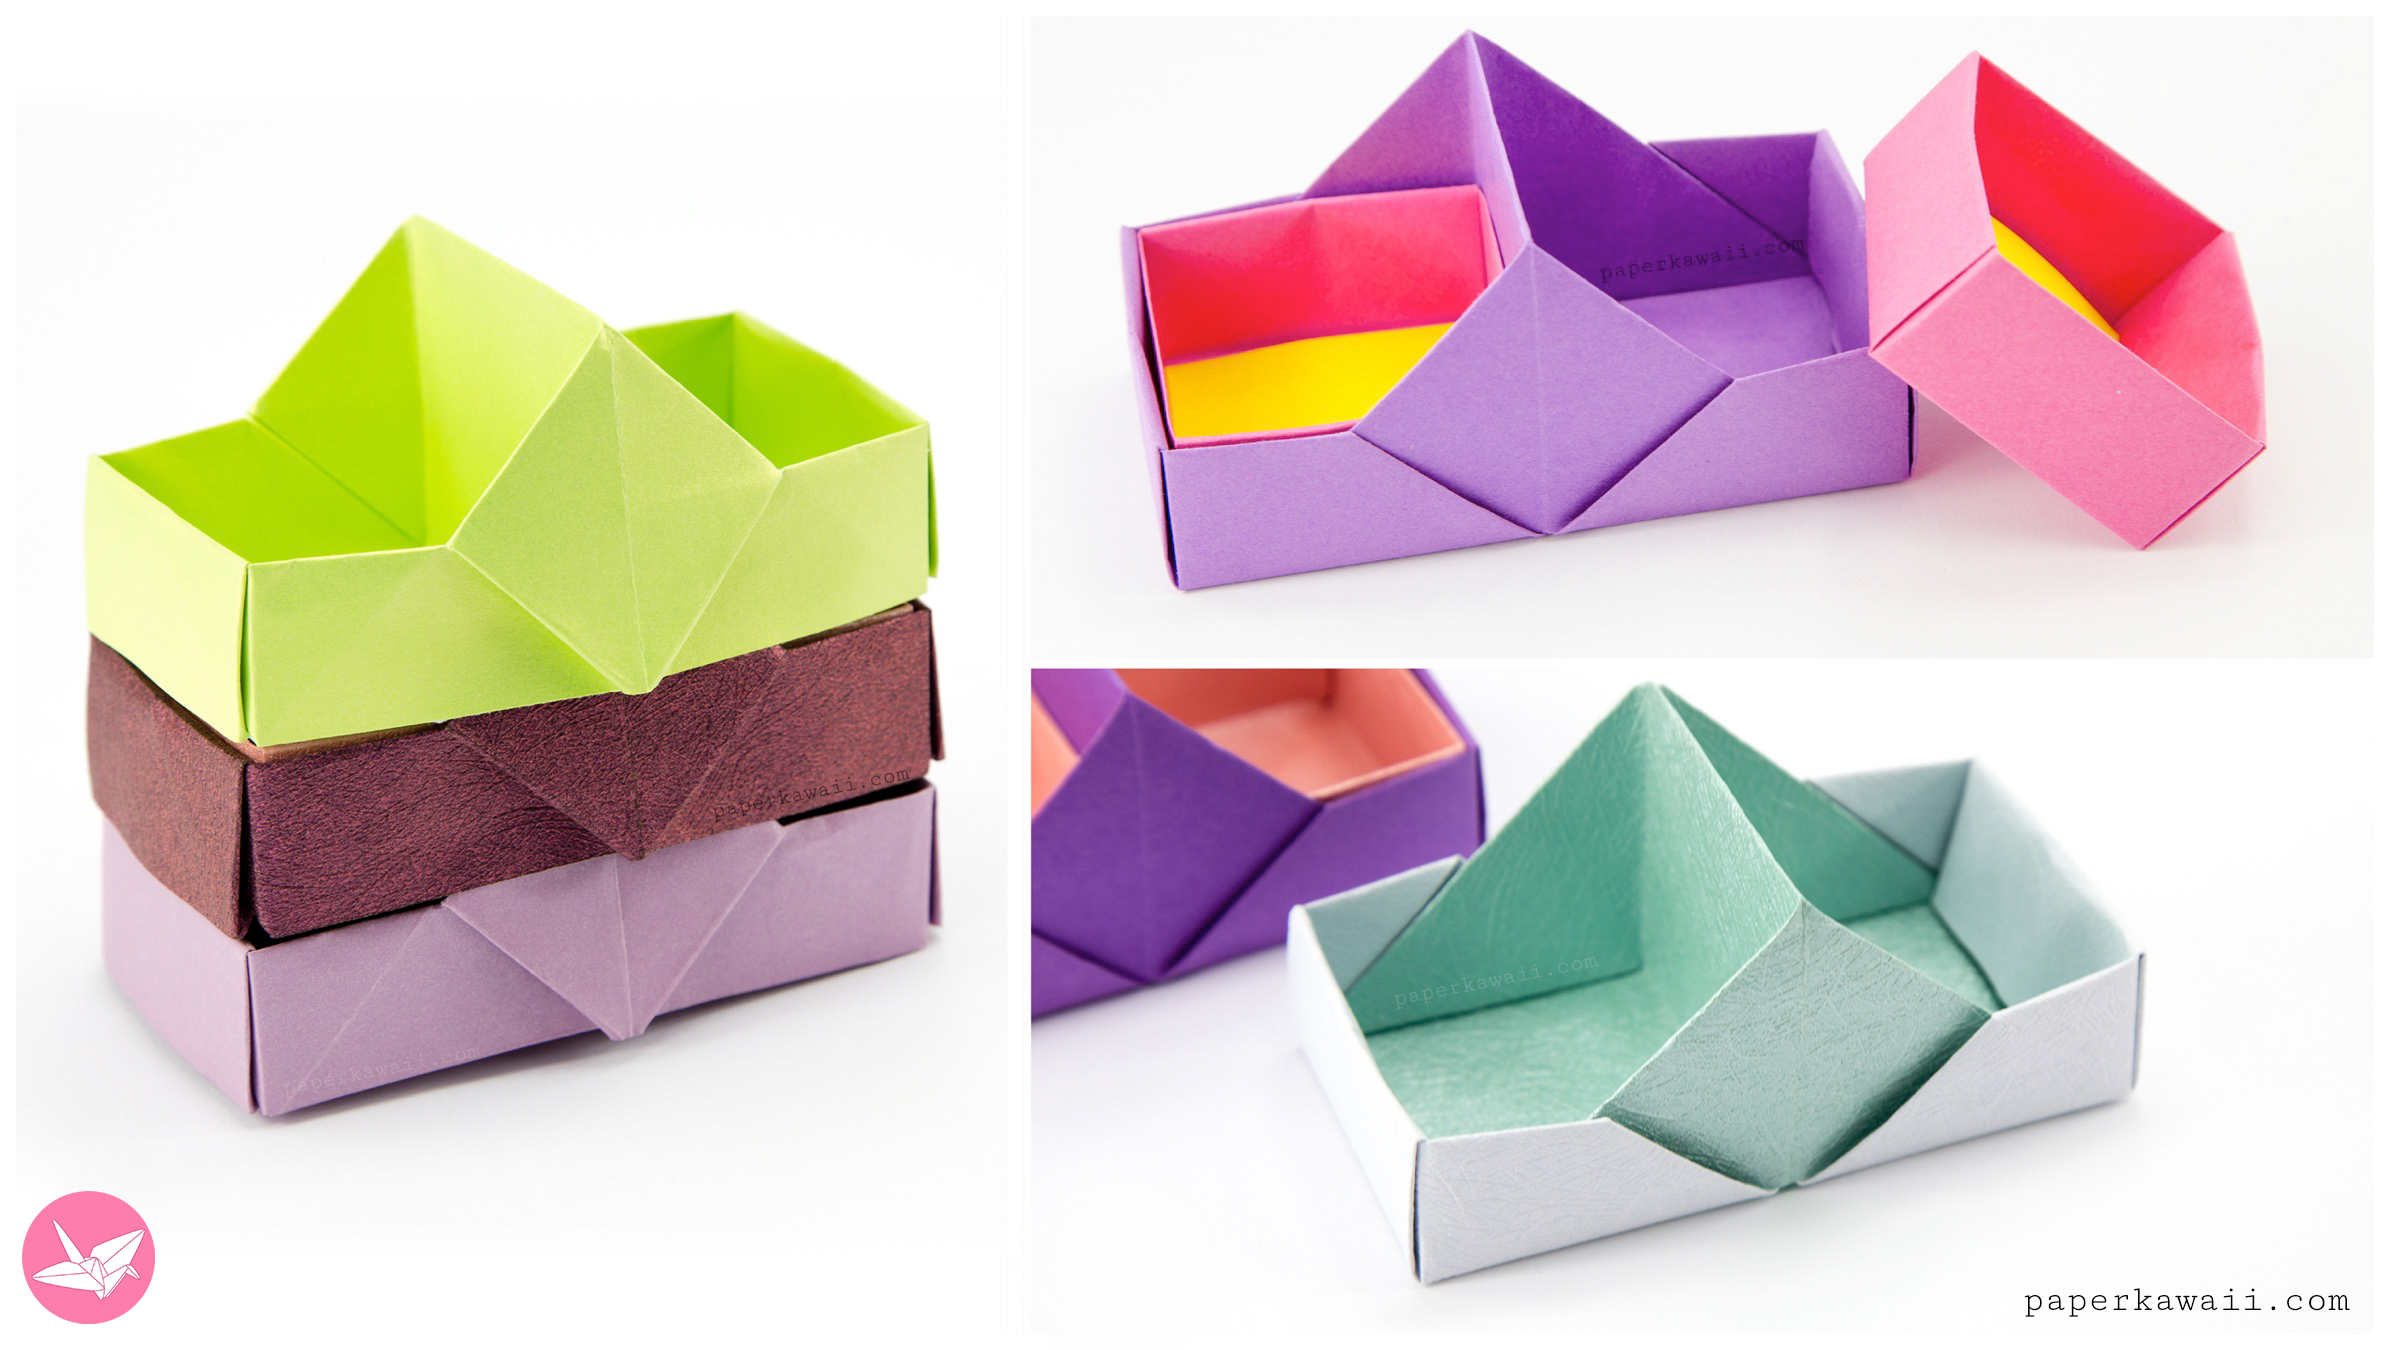 Two Sectioned Origami Tray / Box Tutorial - Paper Kawaii - photo#43